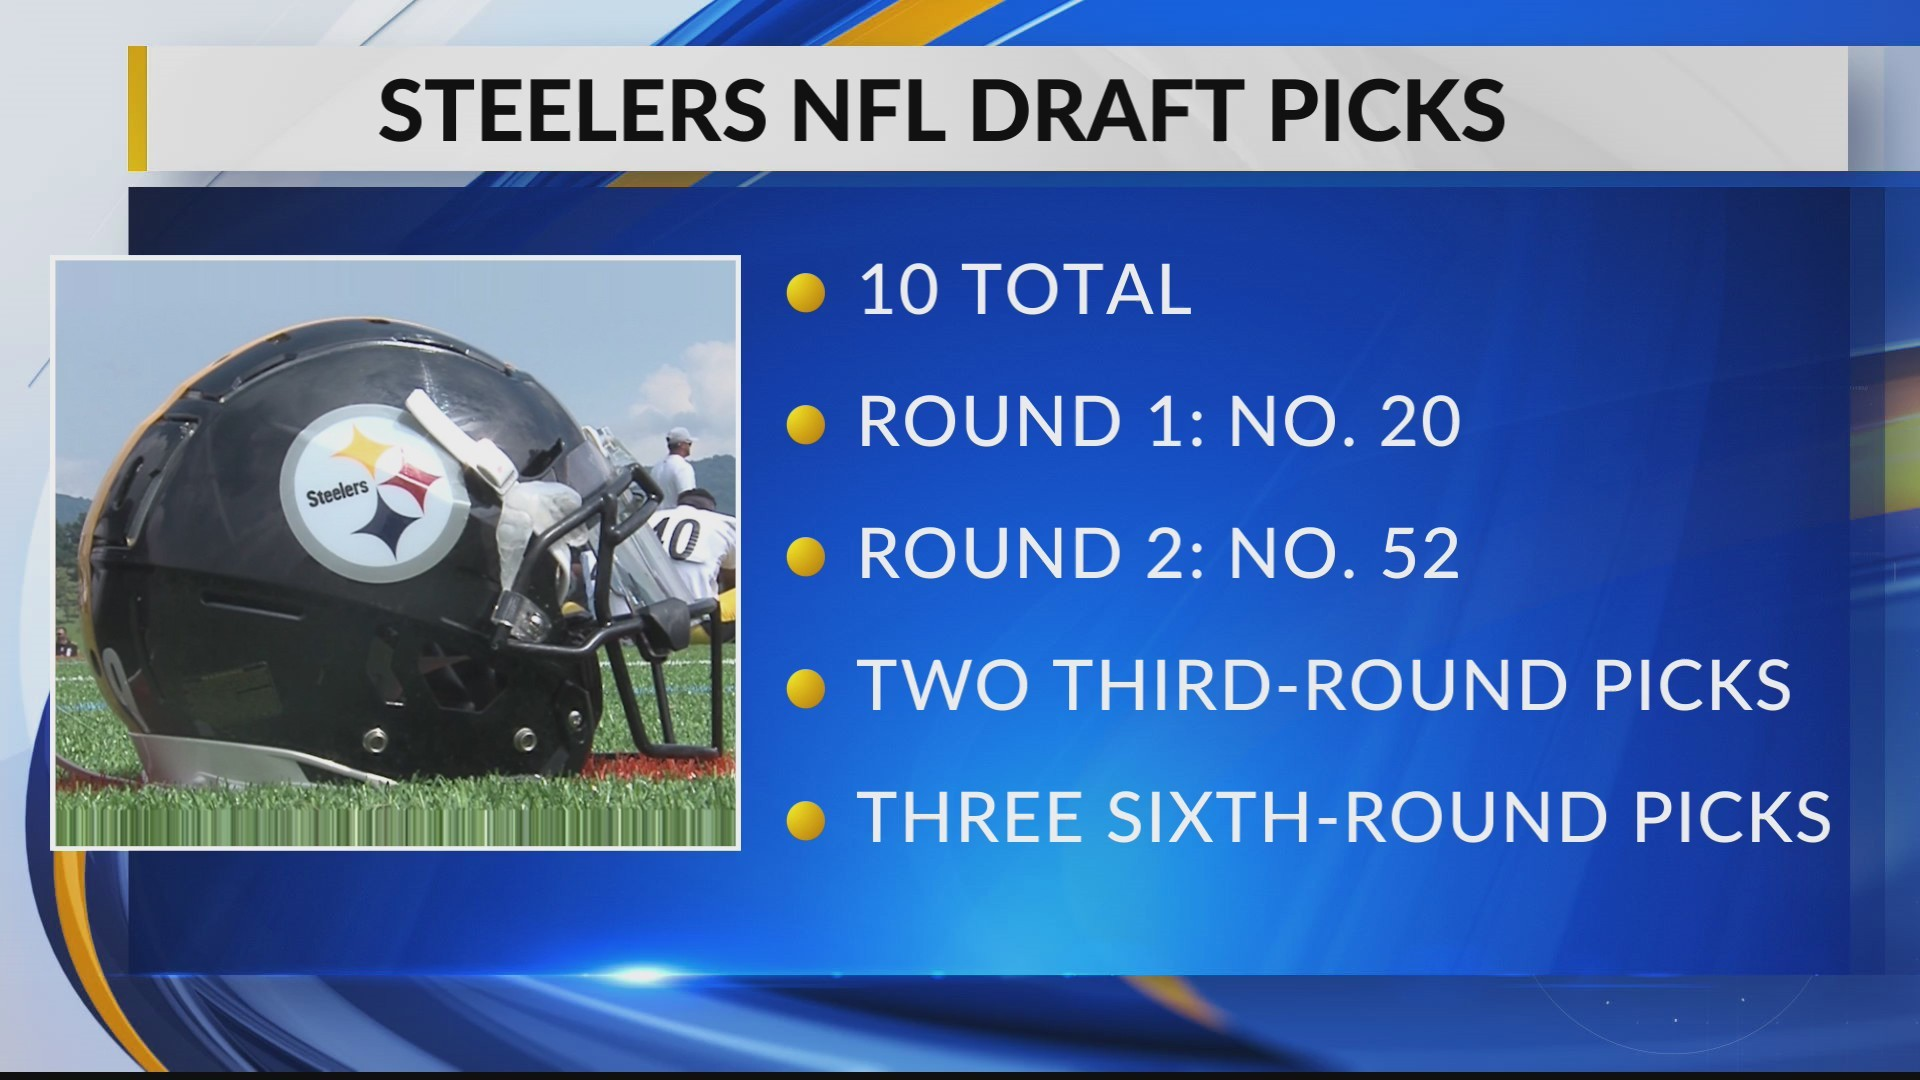 Steelers_NFL_Draft_Picks_0_20190422223938